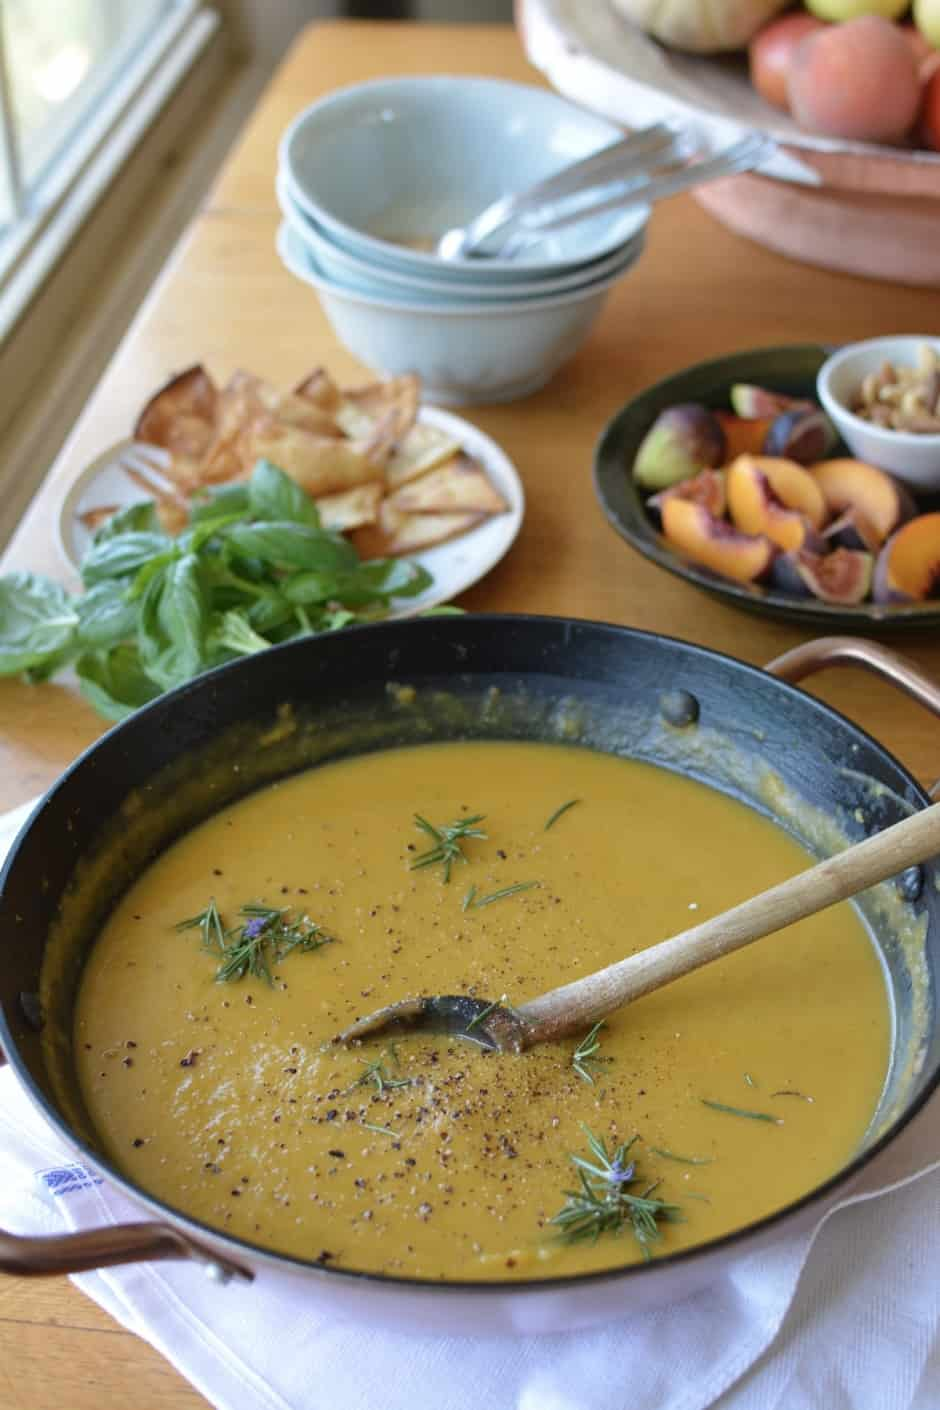 Homemade Roasted Squash Soup with just 10 ingredients! This soup recipe is healthy and has a deliciously creamy flavor with coconut milk, ground coriander, and guajillo chili powder. A super easy vegan and naturally gluten-free comfort food recipe! #roastedsquashsoup #butternutsquashsoup #vegansoup #easysoup